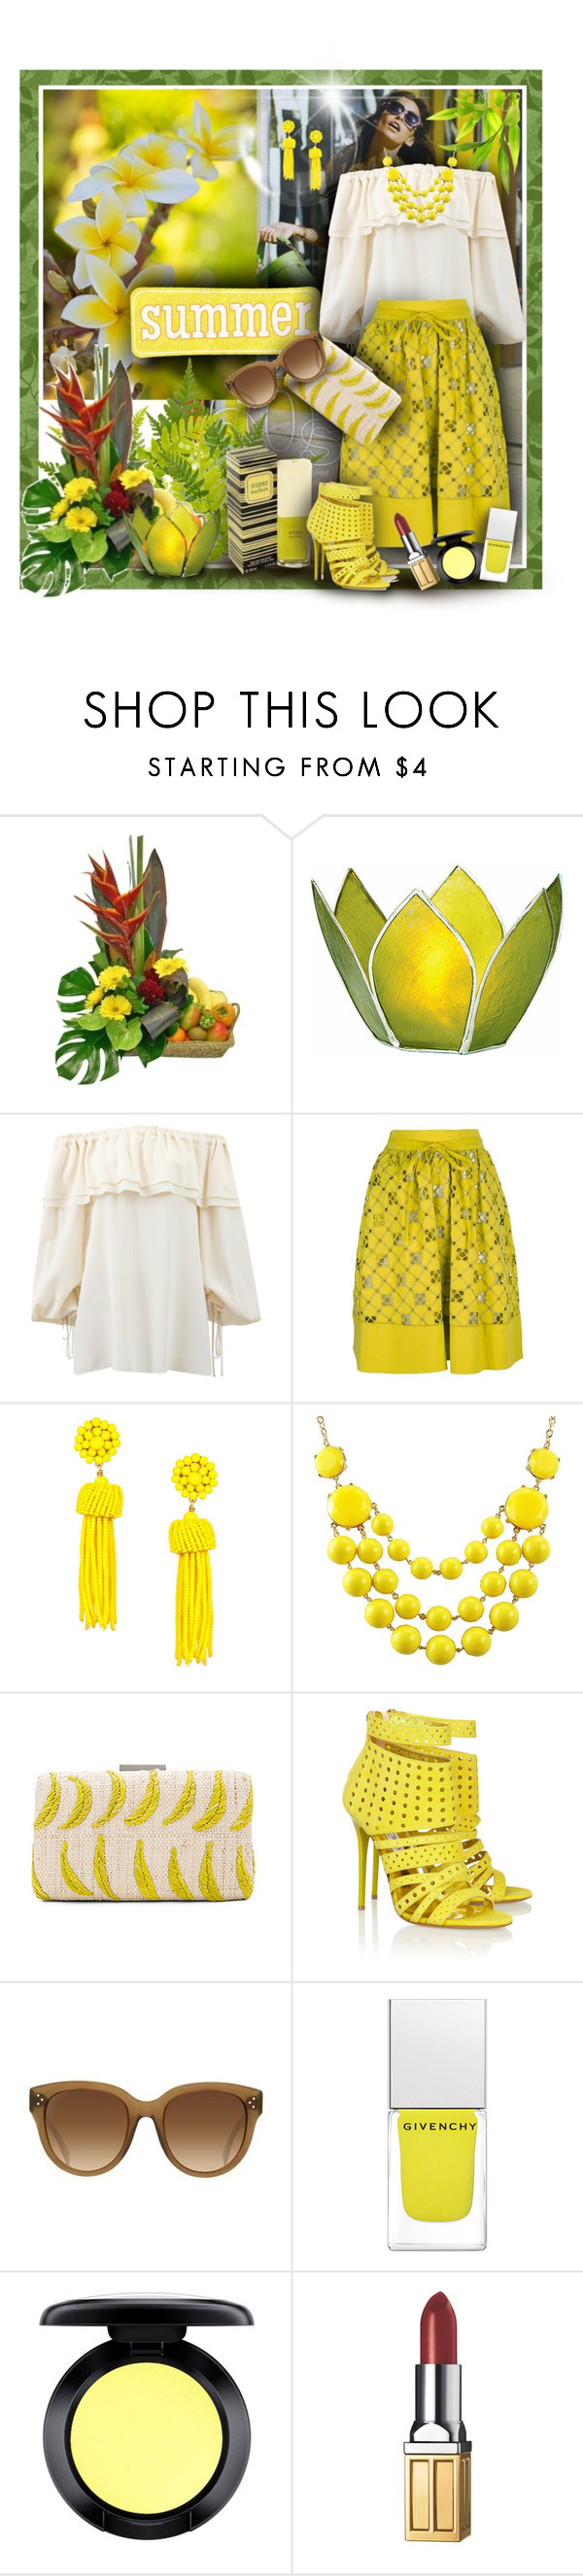 """""""Summer Sun"""" by franceseattle ❤ liked on Polyvore featuring Michael Kors, MANTU, Kayu, Jimmy Choo, Givenchy, MAC Cosmetics and Elizabeth Arden"""